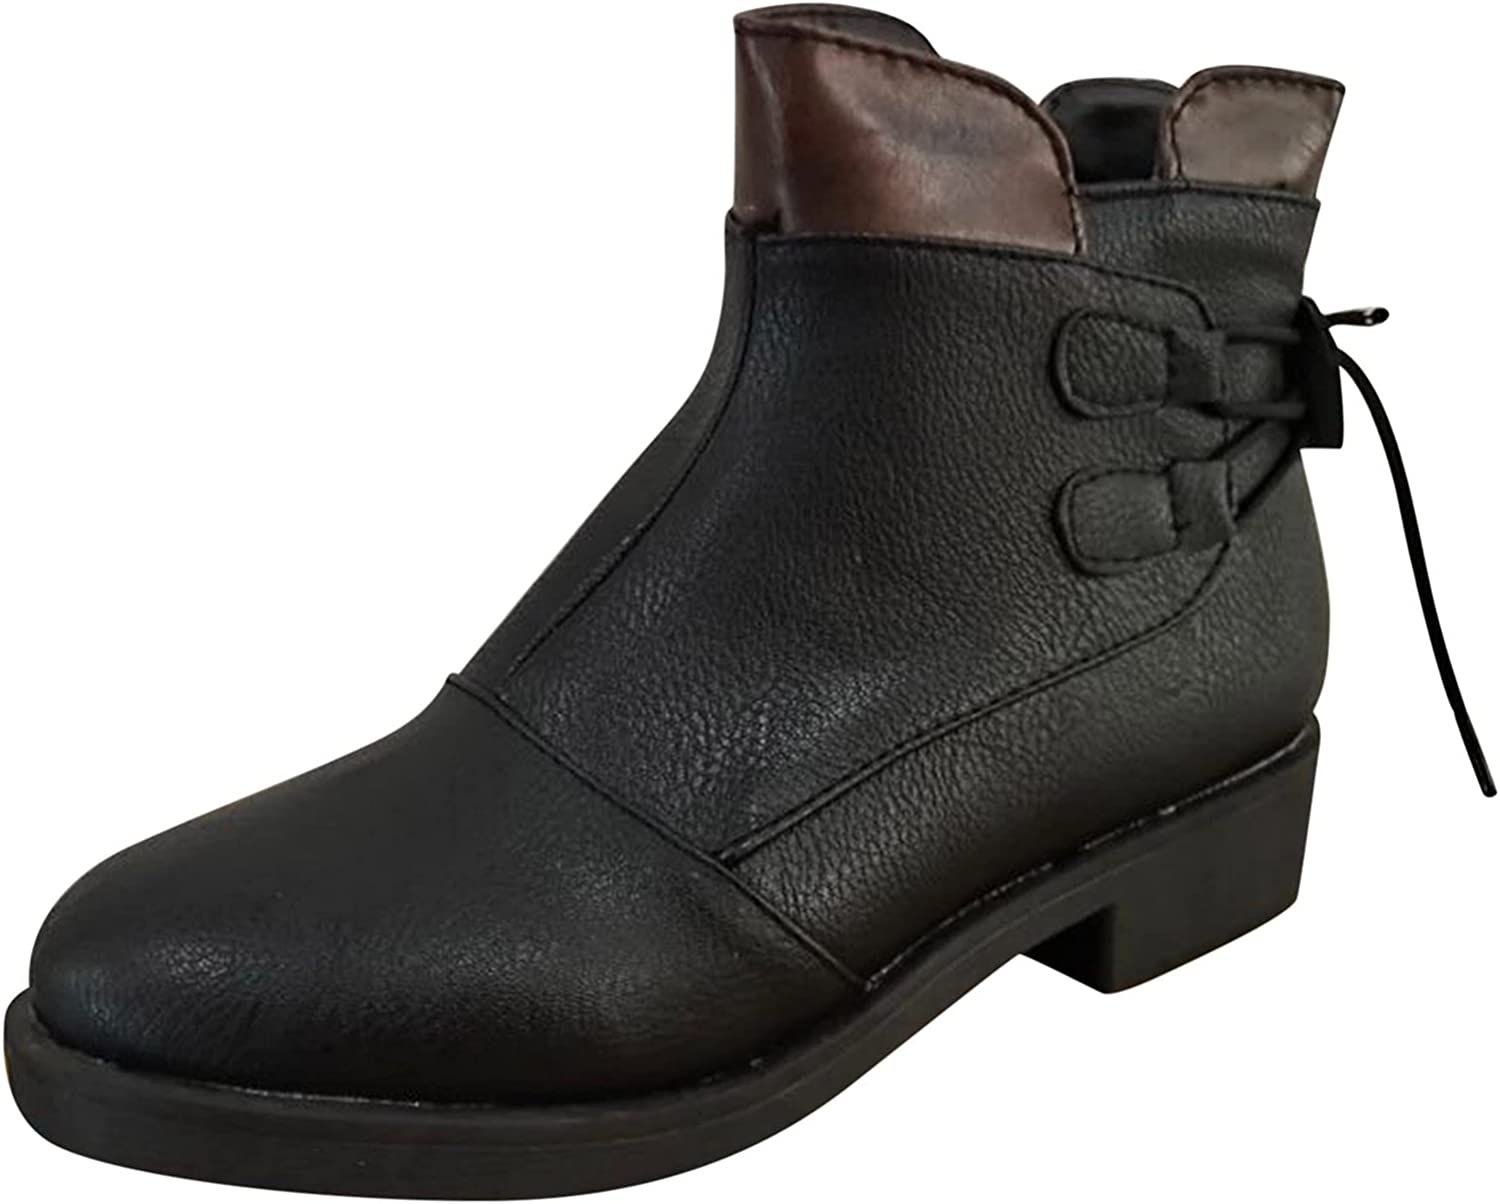 Ankle Boots for Women Solid Color Square Heels Side Zipper Round Toe Short Booties